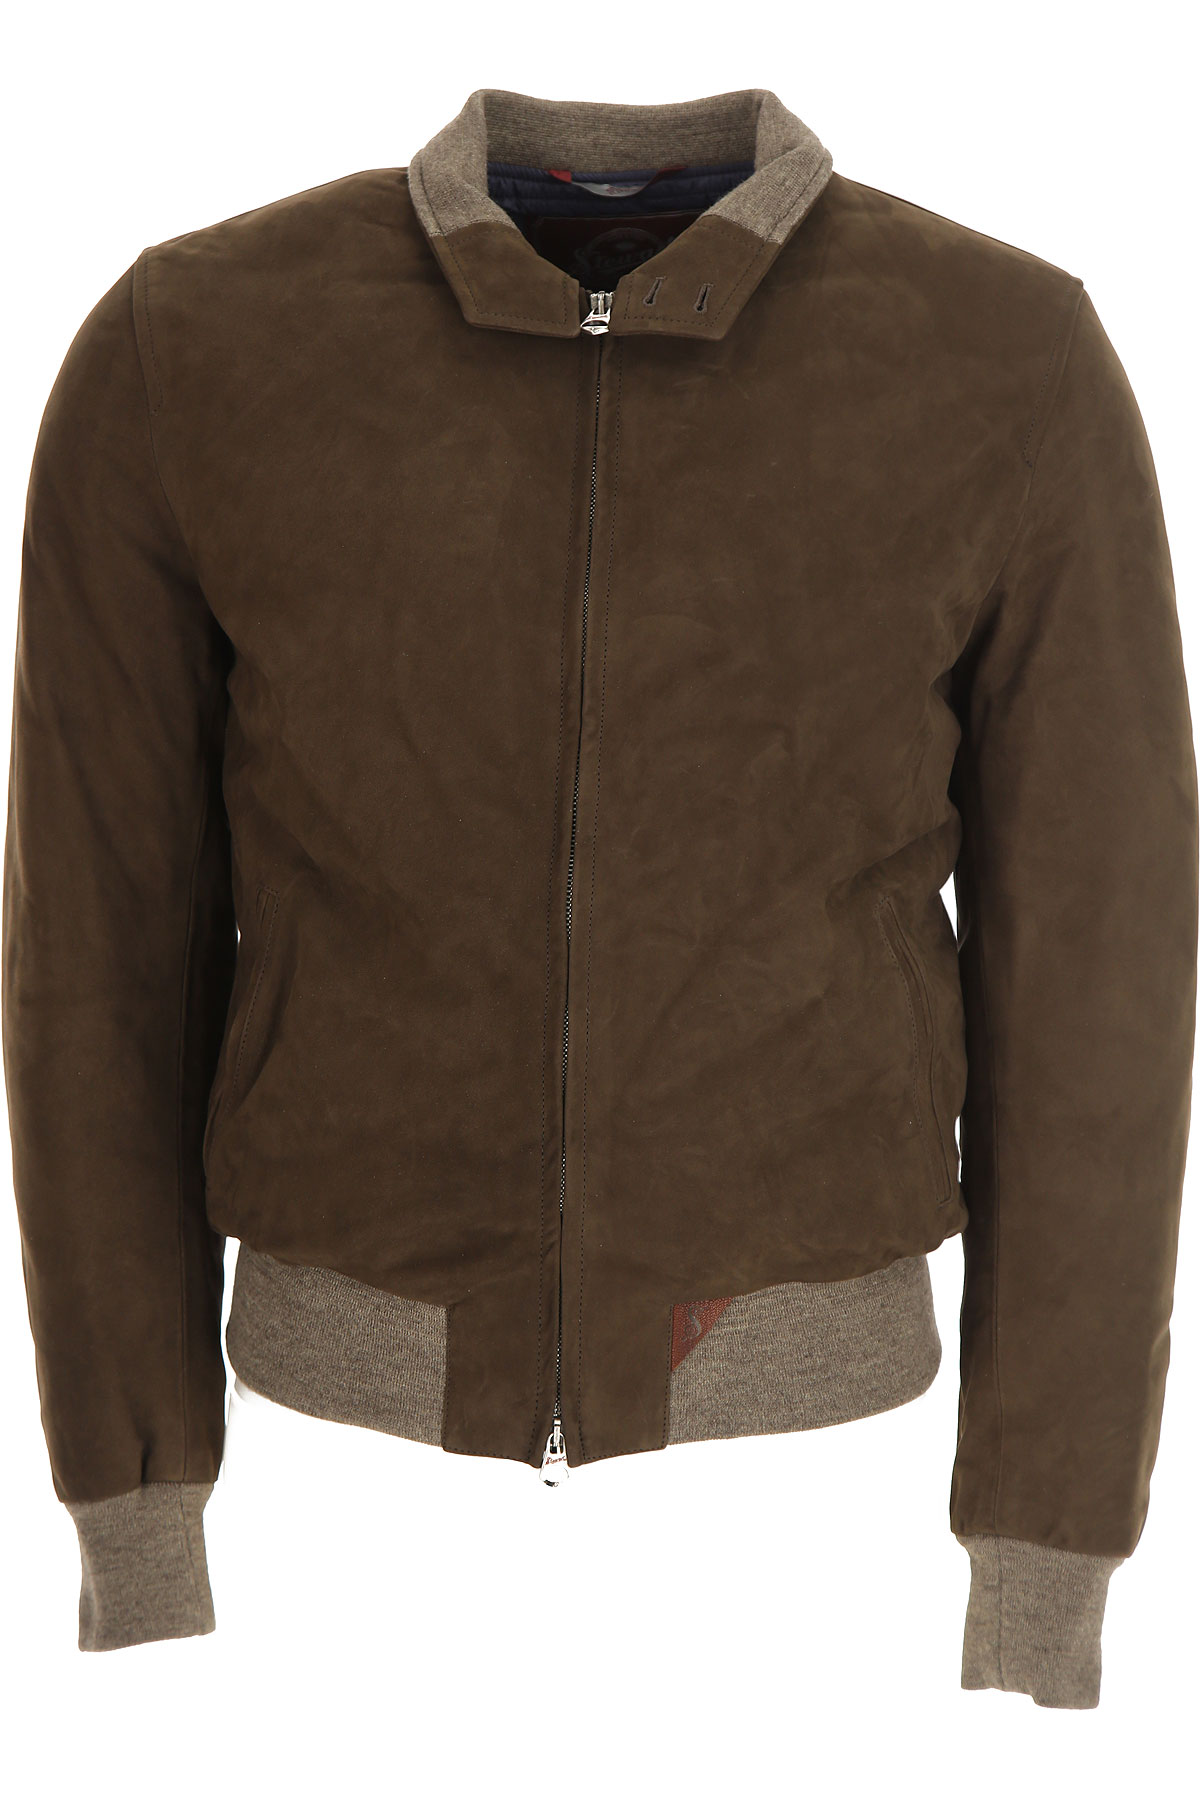 Image of Stewart Leather Jacket for Men, Nuvola, Mud Brown, suede, 2017, L M XL XXL